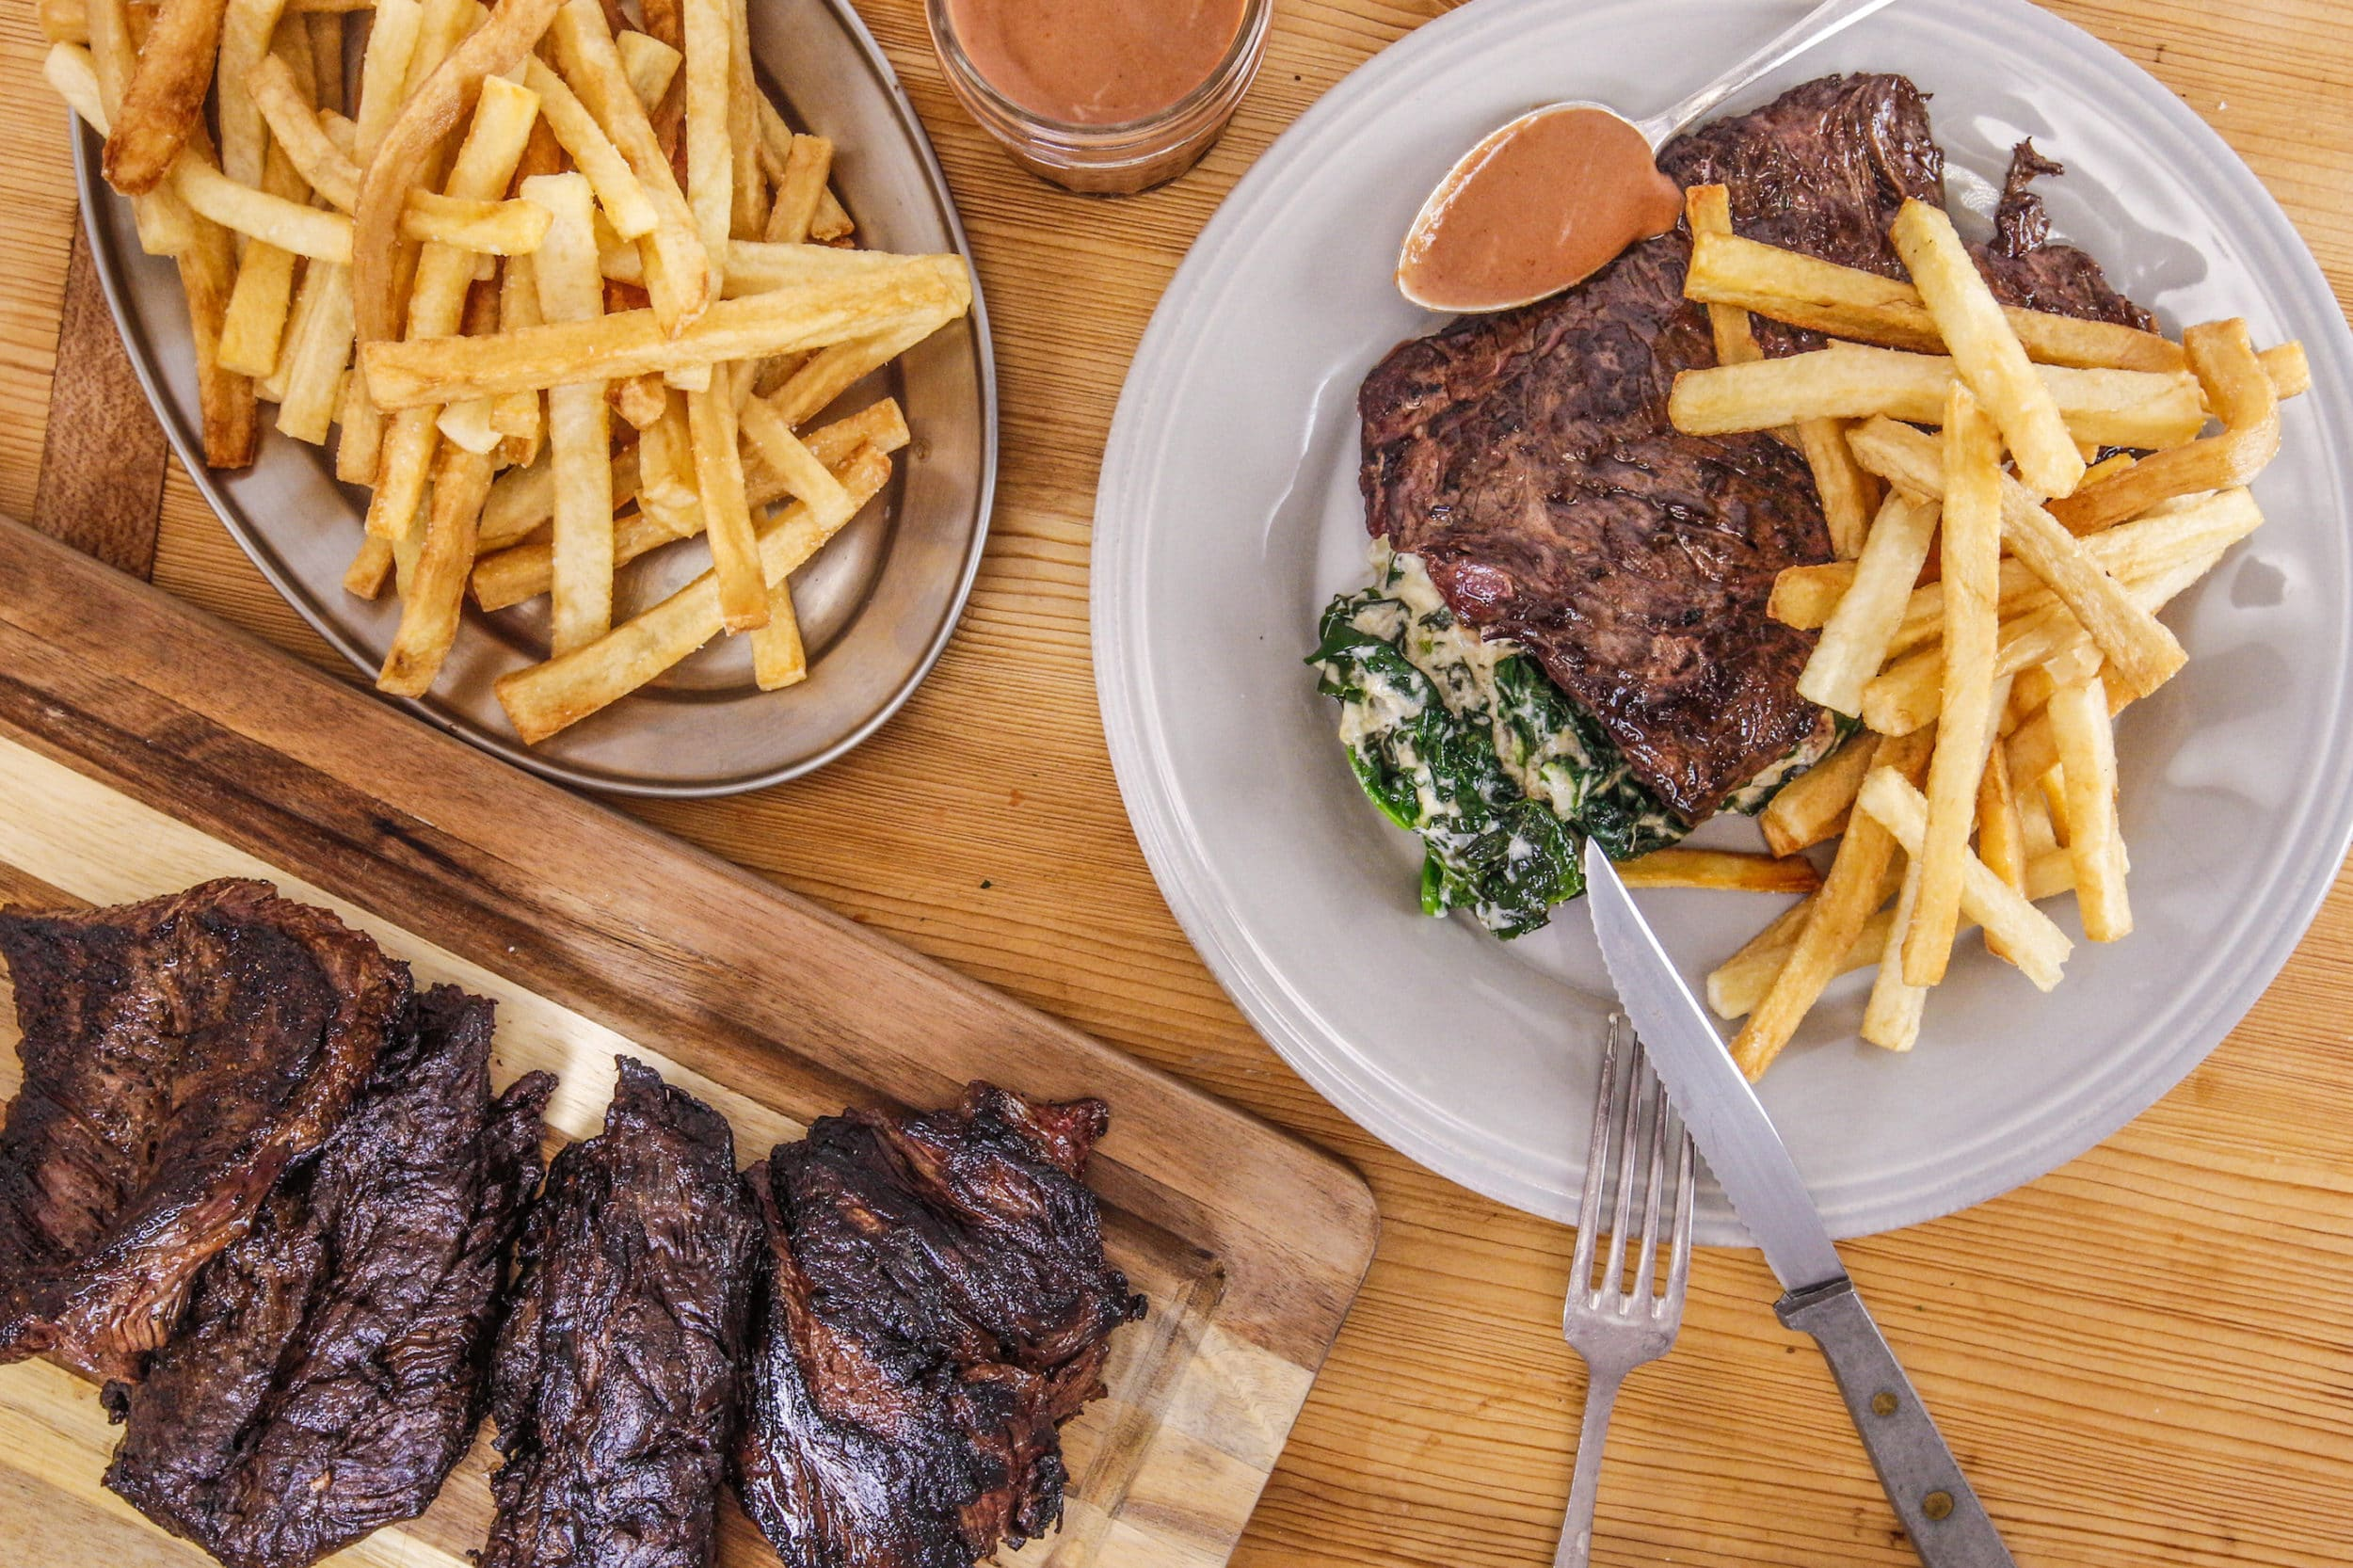 Rachael's Steak Frites and Creamed Spinach